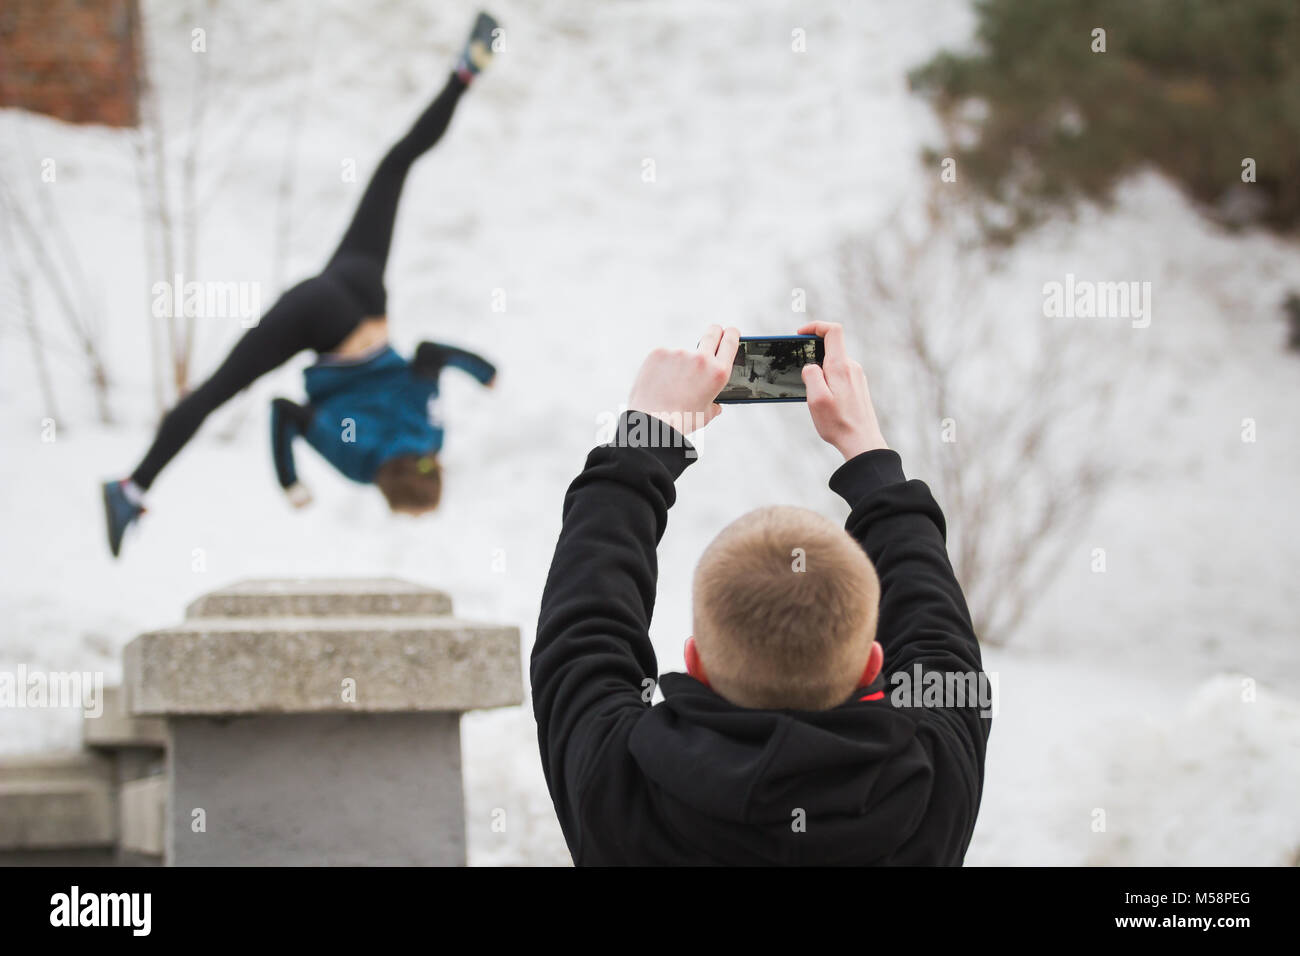 Teenager makes photo on smartphone of acrobatic jump girl in winter city park - parkour concept - Stock Image